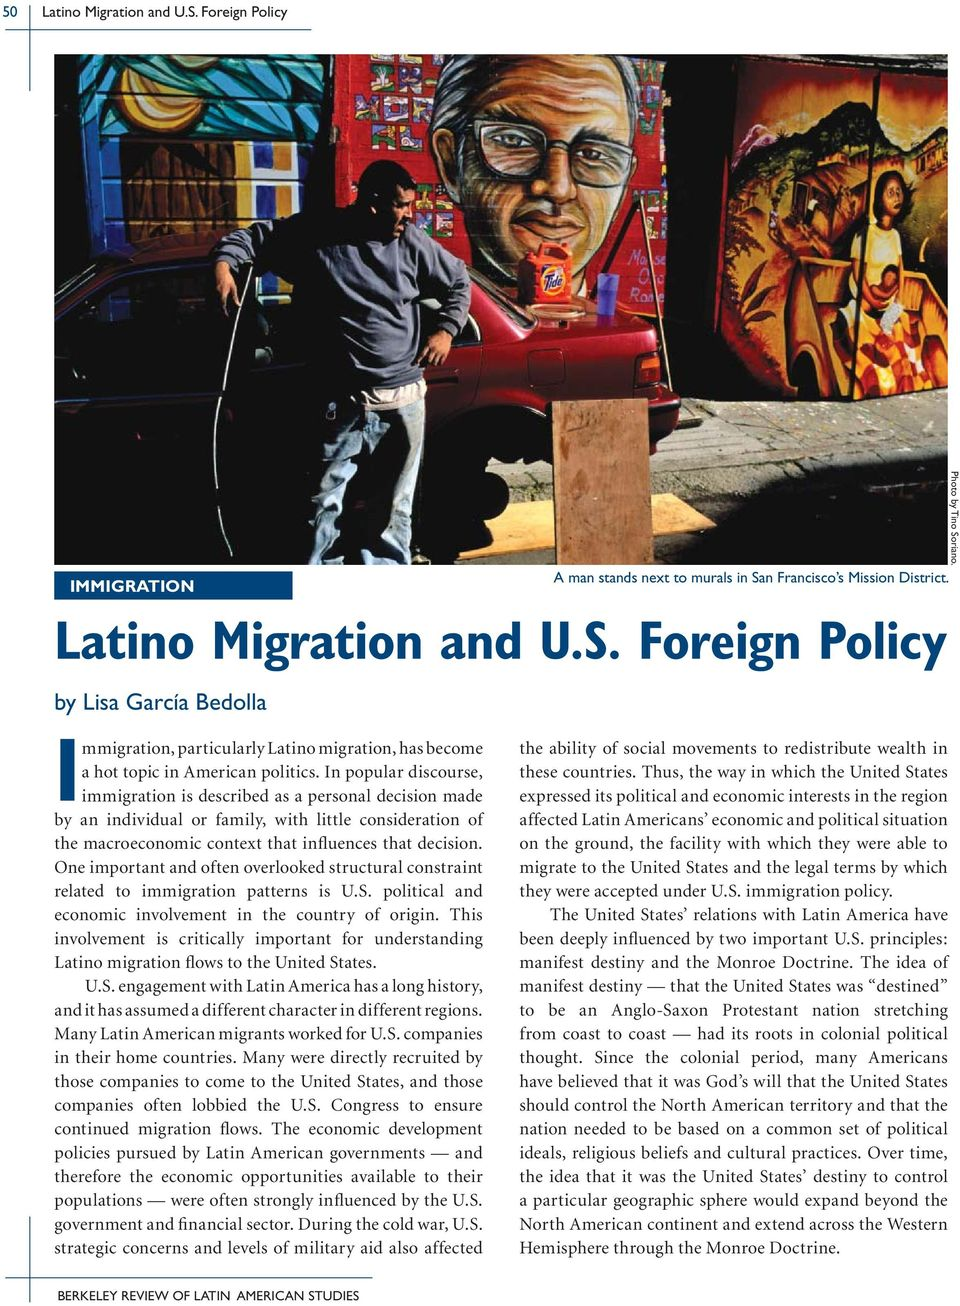 In popular discourse, immigration is described as a personal decision made by an individual or family, with little consideration of the macroeconomic context that influences that decision.